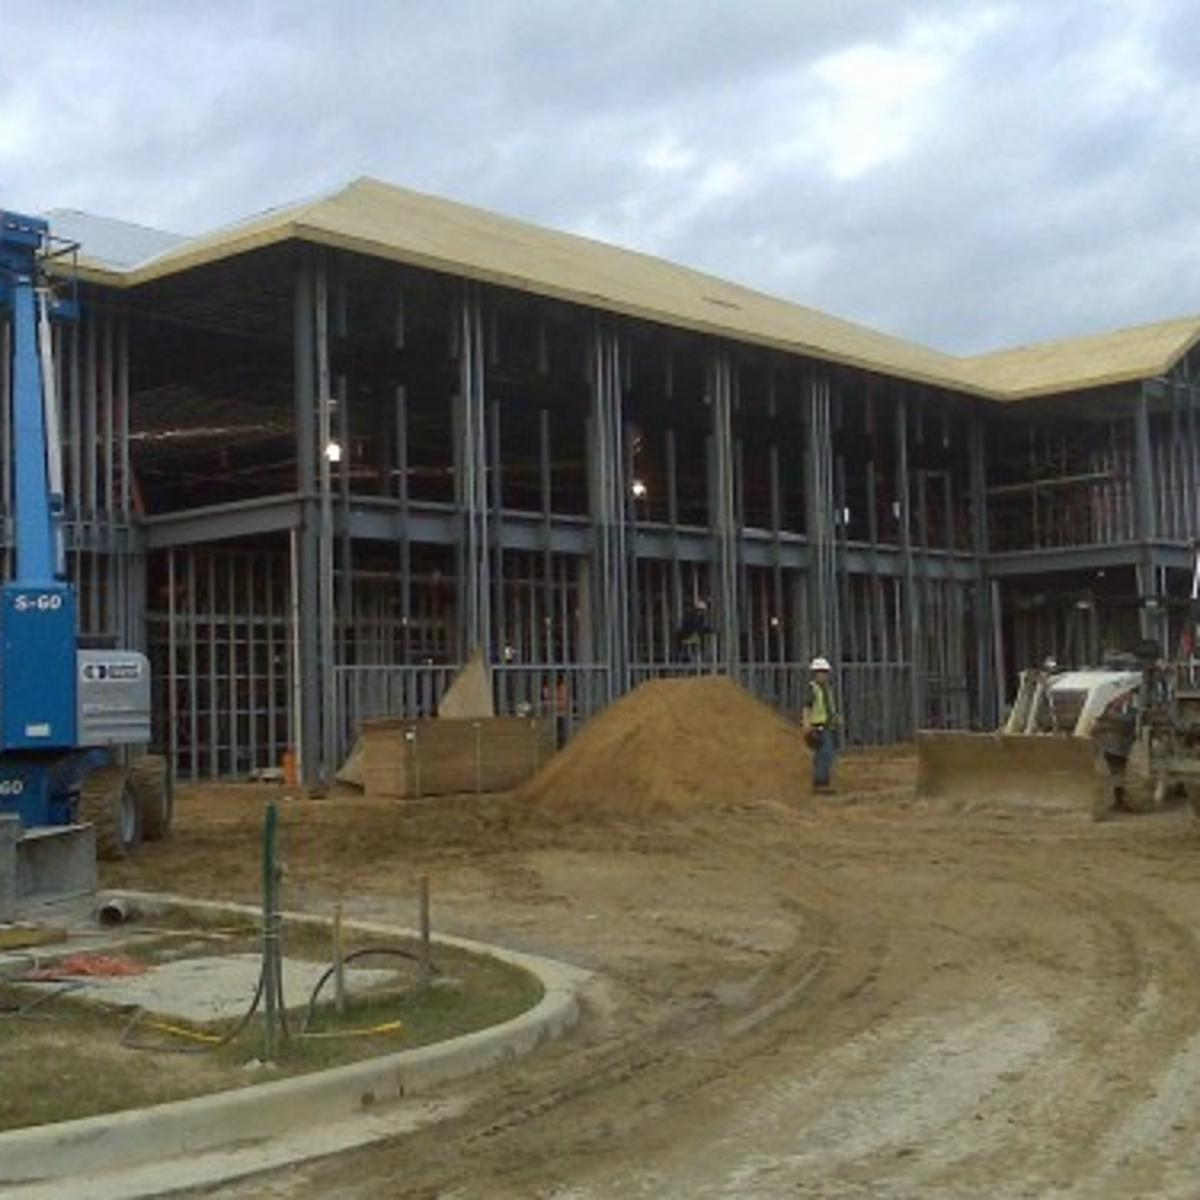 Fire stations, jail sustain Horry County construction